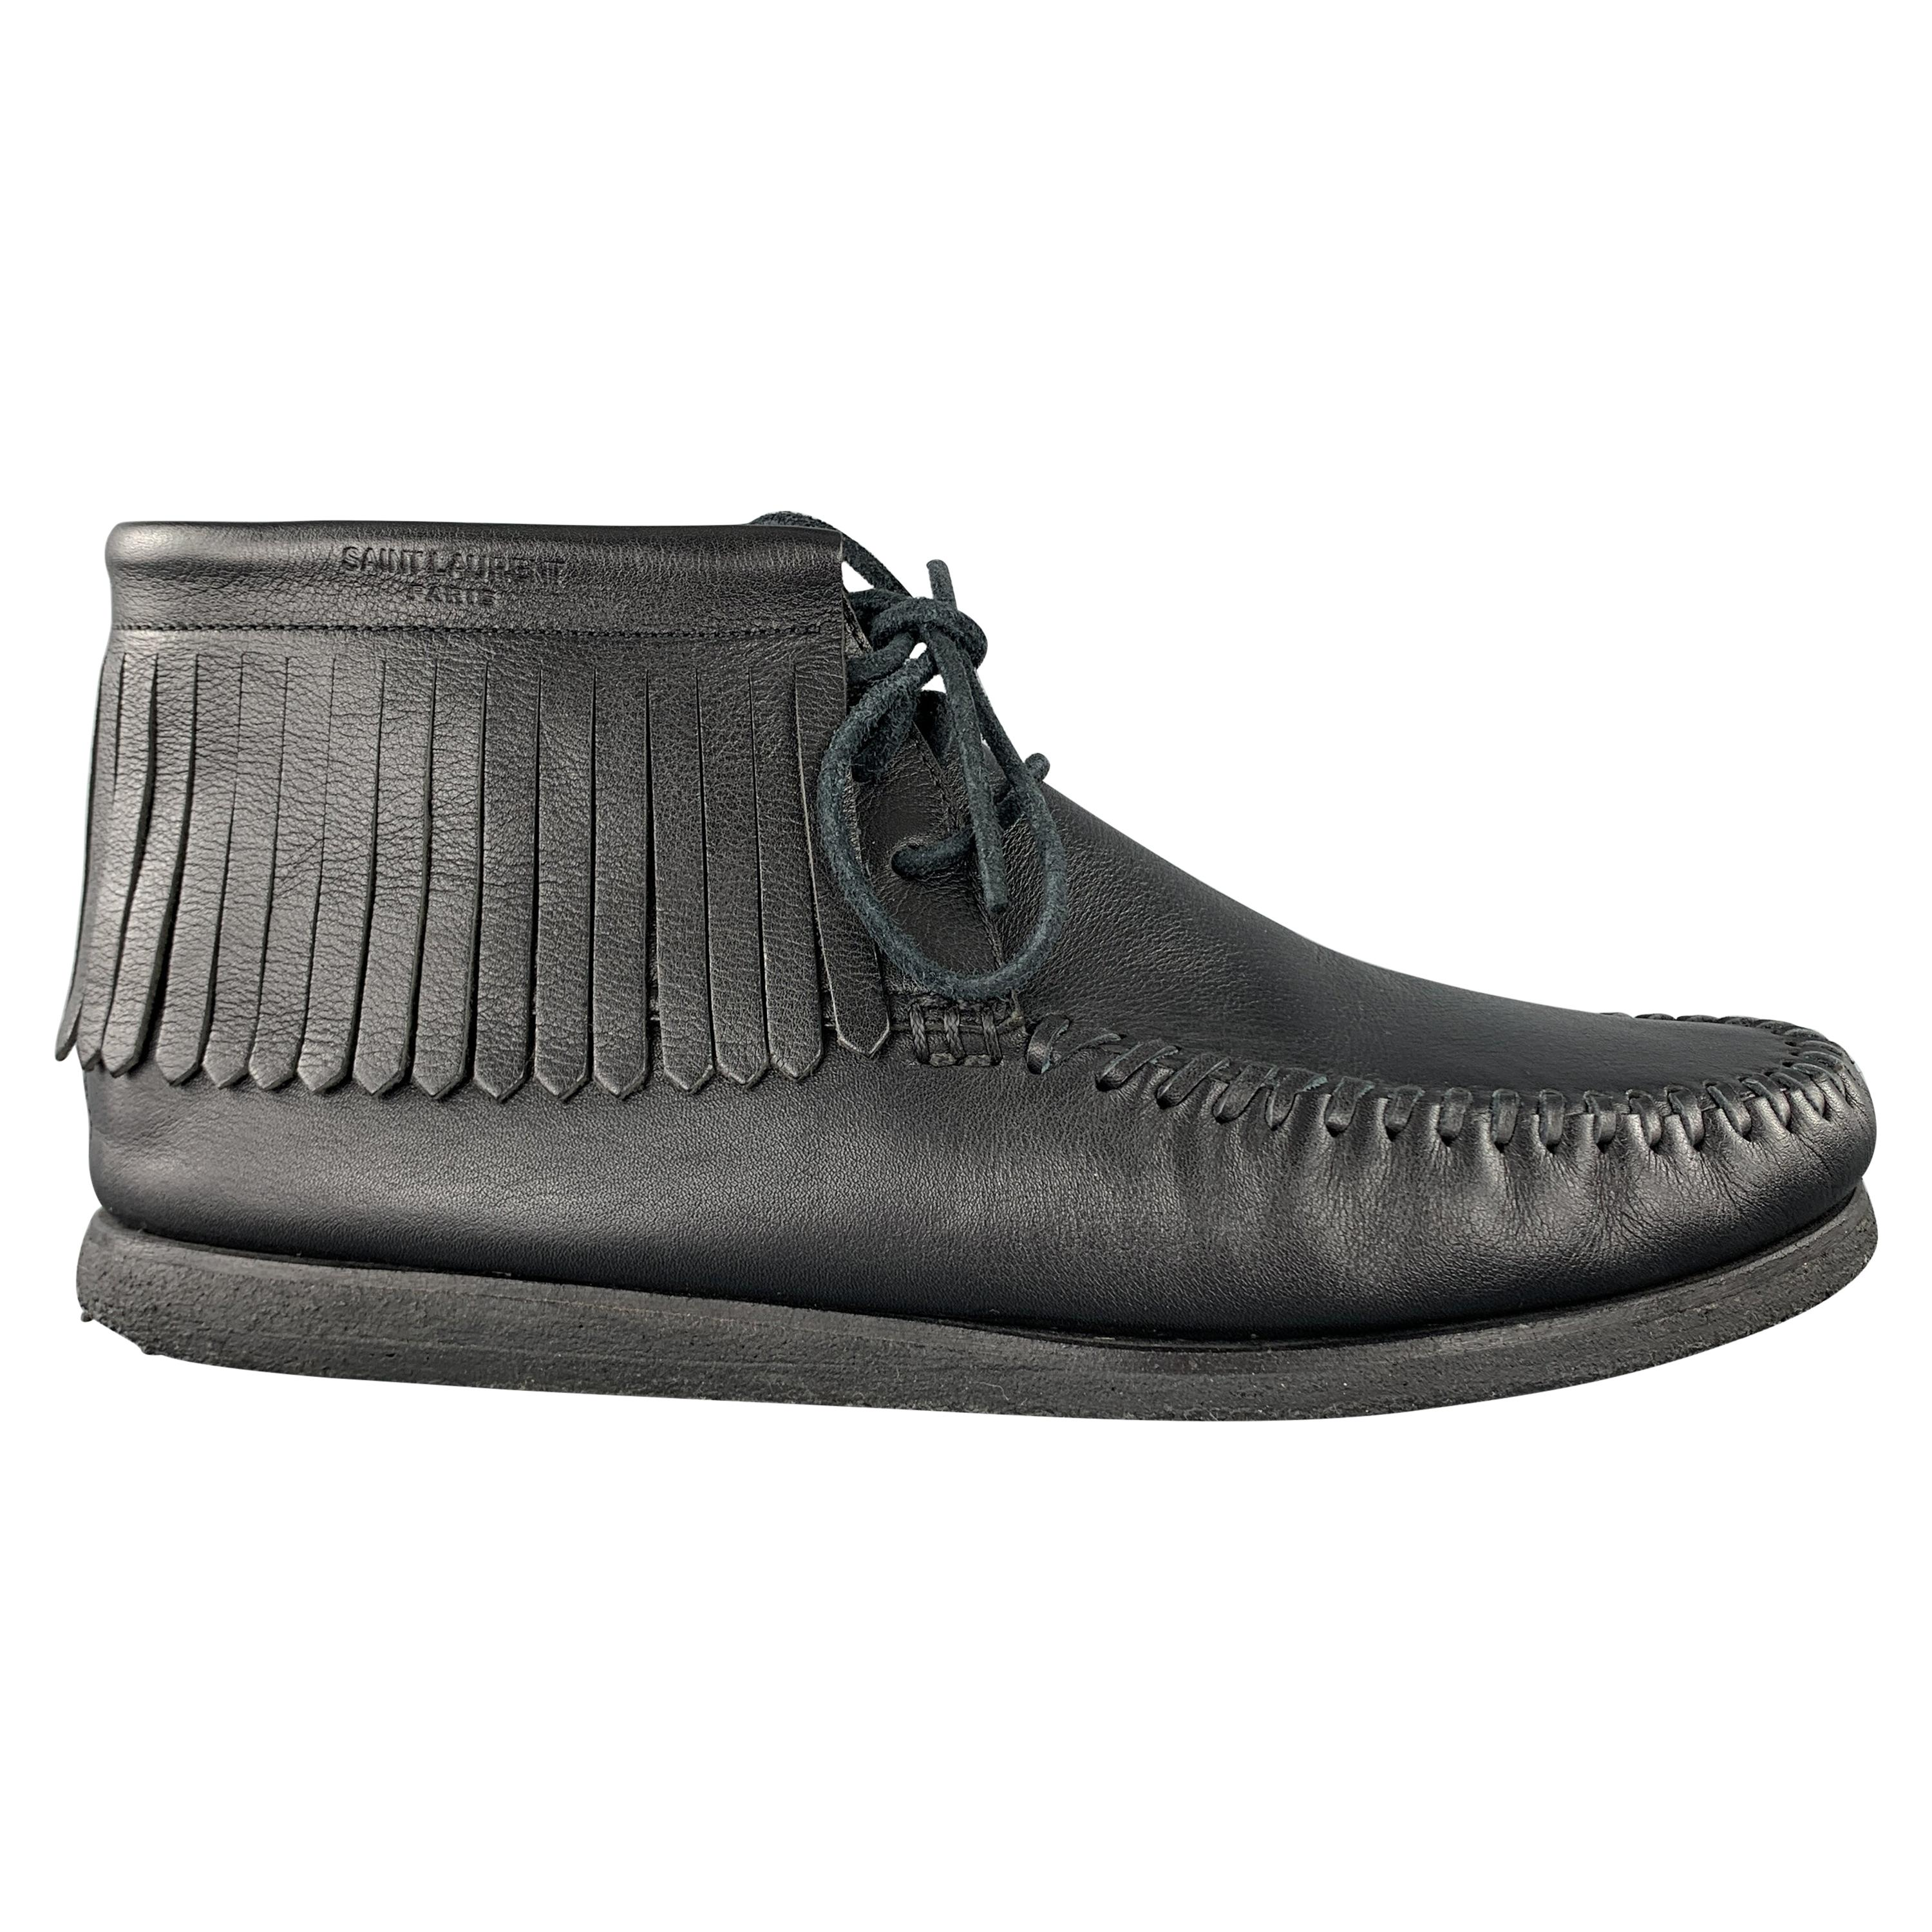 SAINT LAURENT Size 12 Black Leather Fringed Moccasin Style Boot Sneakers